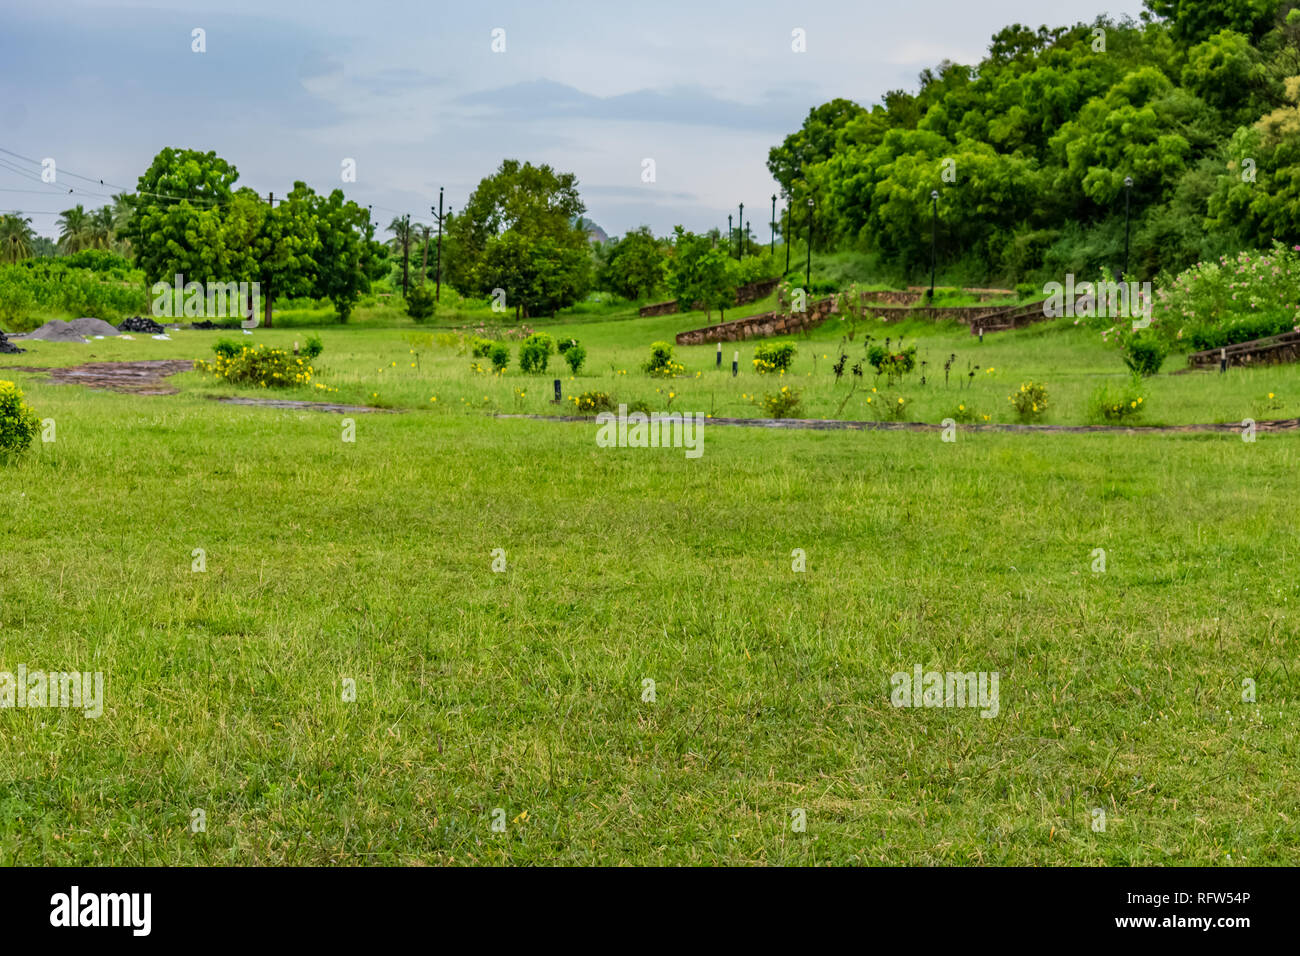 greenery fields looking awesome of a garden with trees & blue sky clouds. Stock Photo